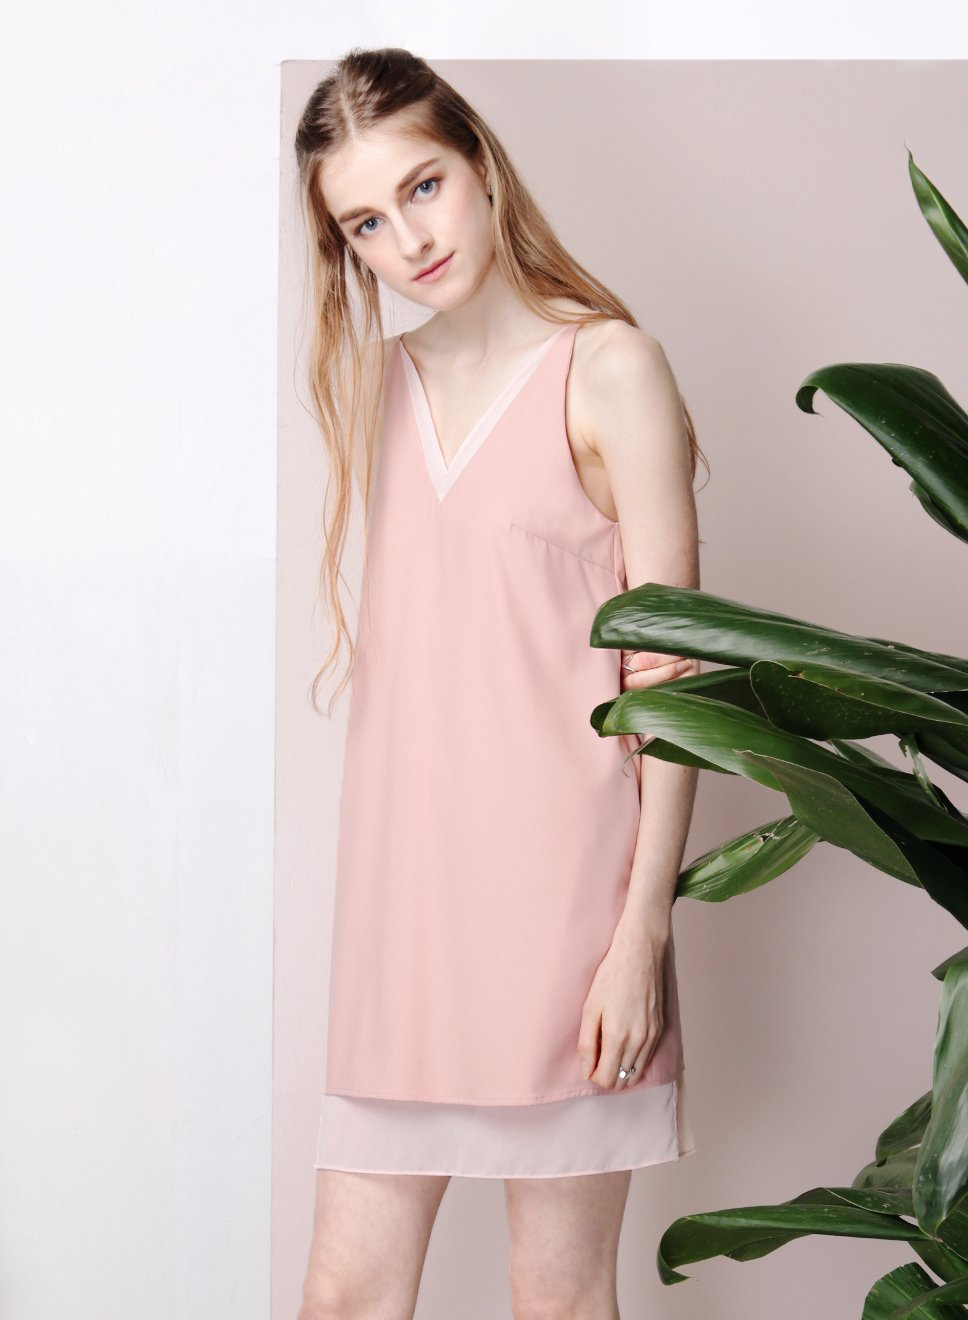 REPOSE Chiffon Insert Slip Dress (Dusk Pink) at $ 22.50 only sold at And Well Dressed Online Fashion Store Singapore